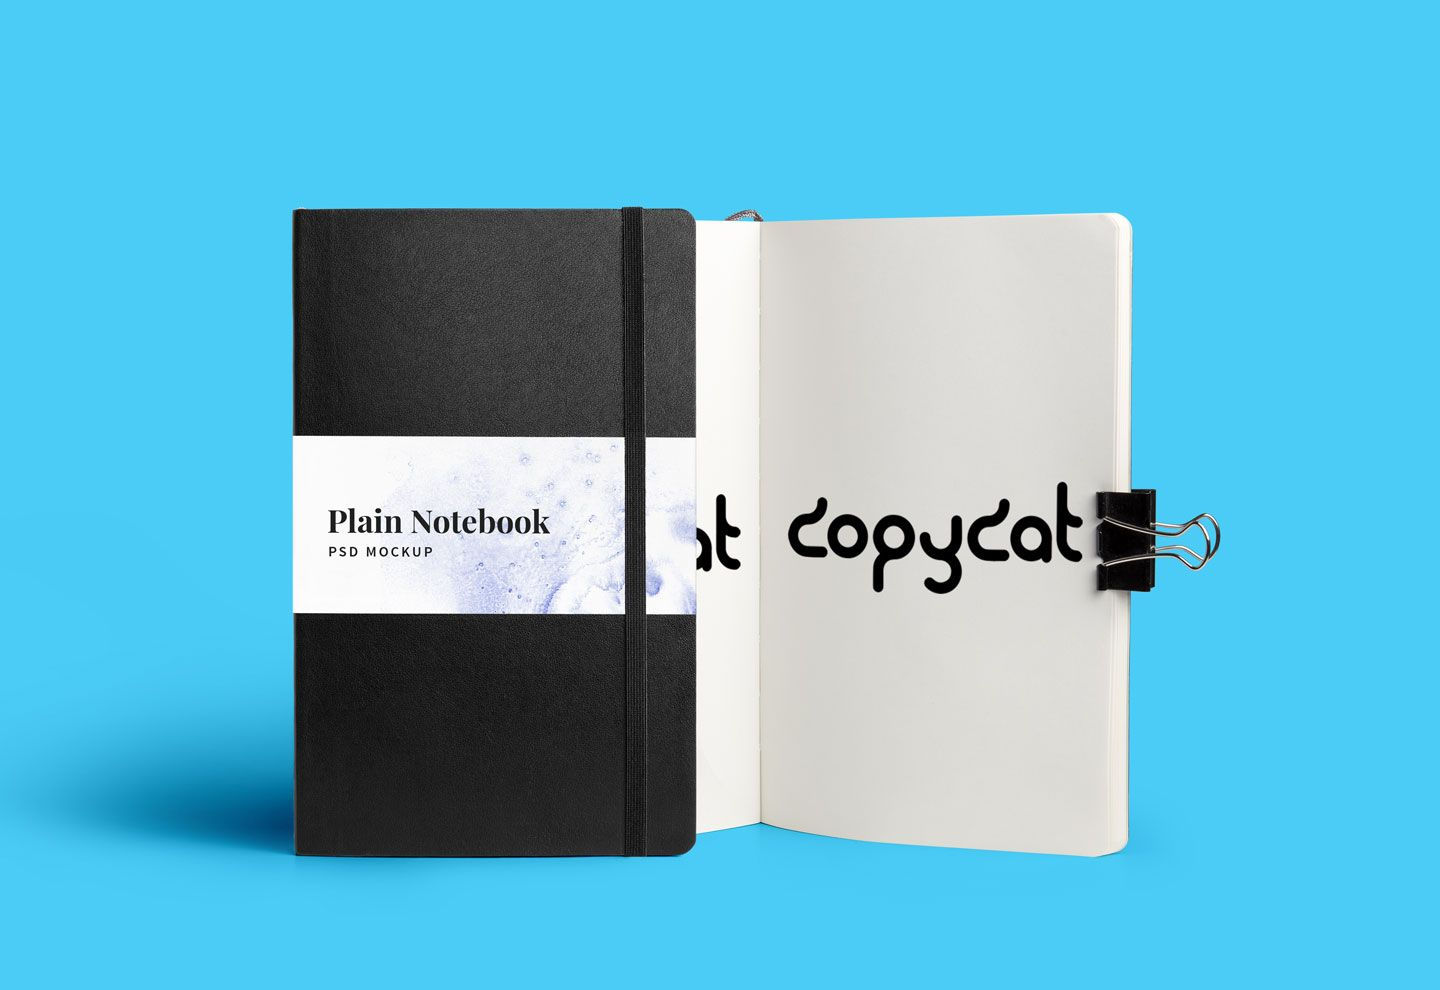 Download Mockup Psd Notebook Yellow Images